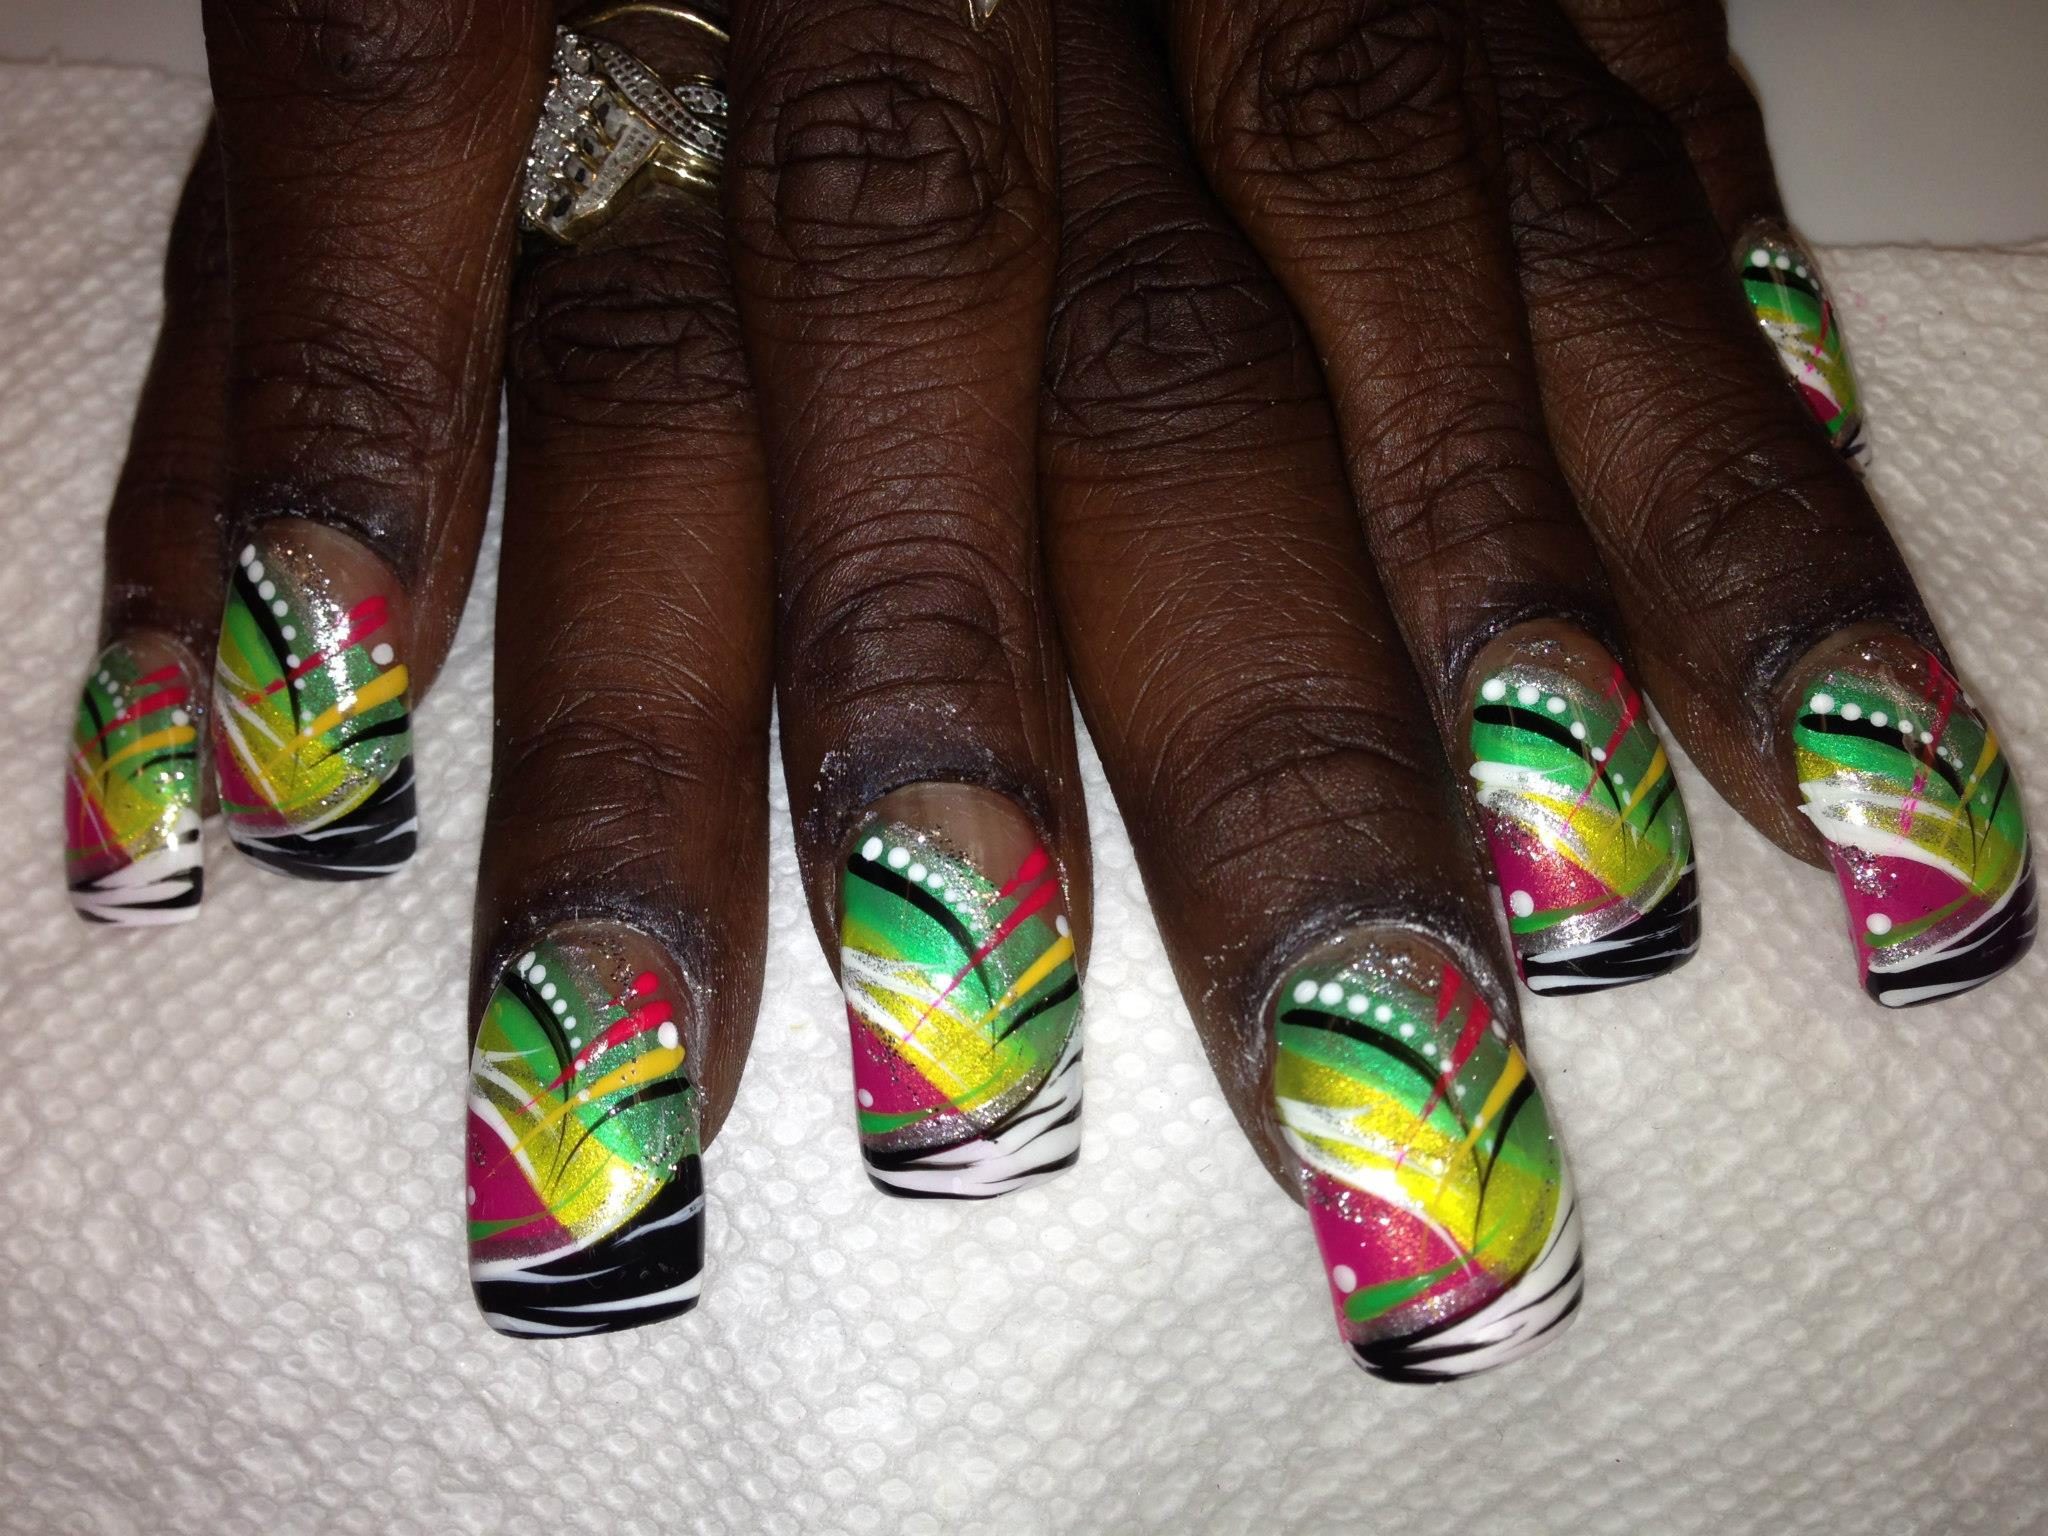 Haitian Celebration Nail Art Design By Top Nails Clarksville Tn